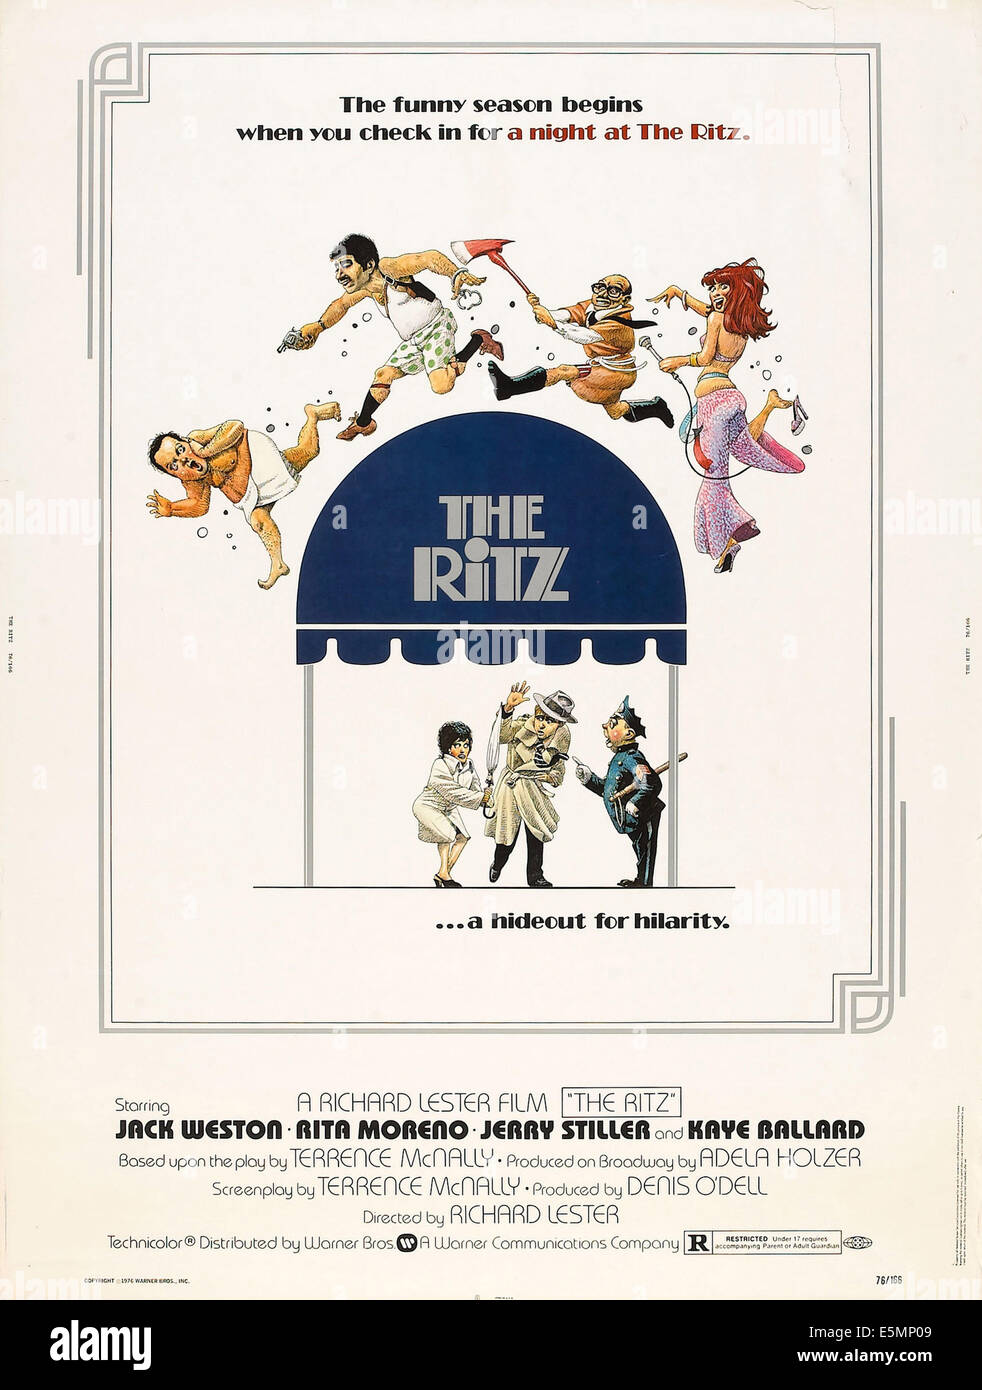 THE RITZ, US poster art, 1976 - Stock Image